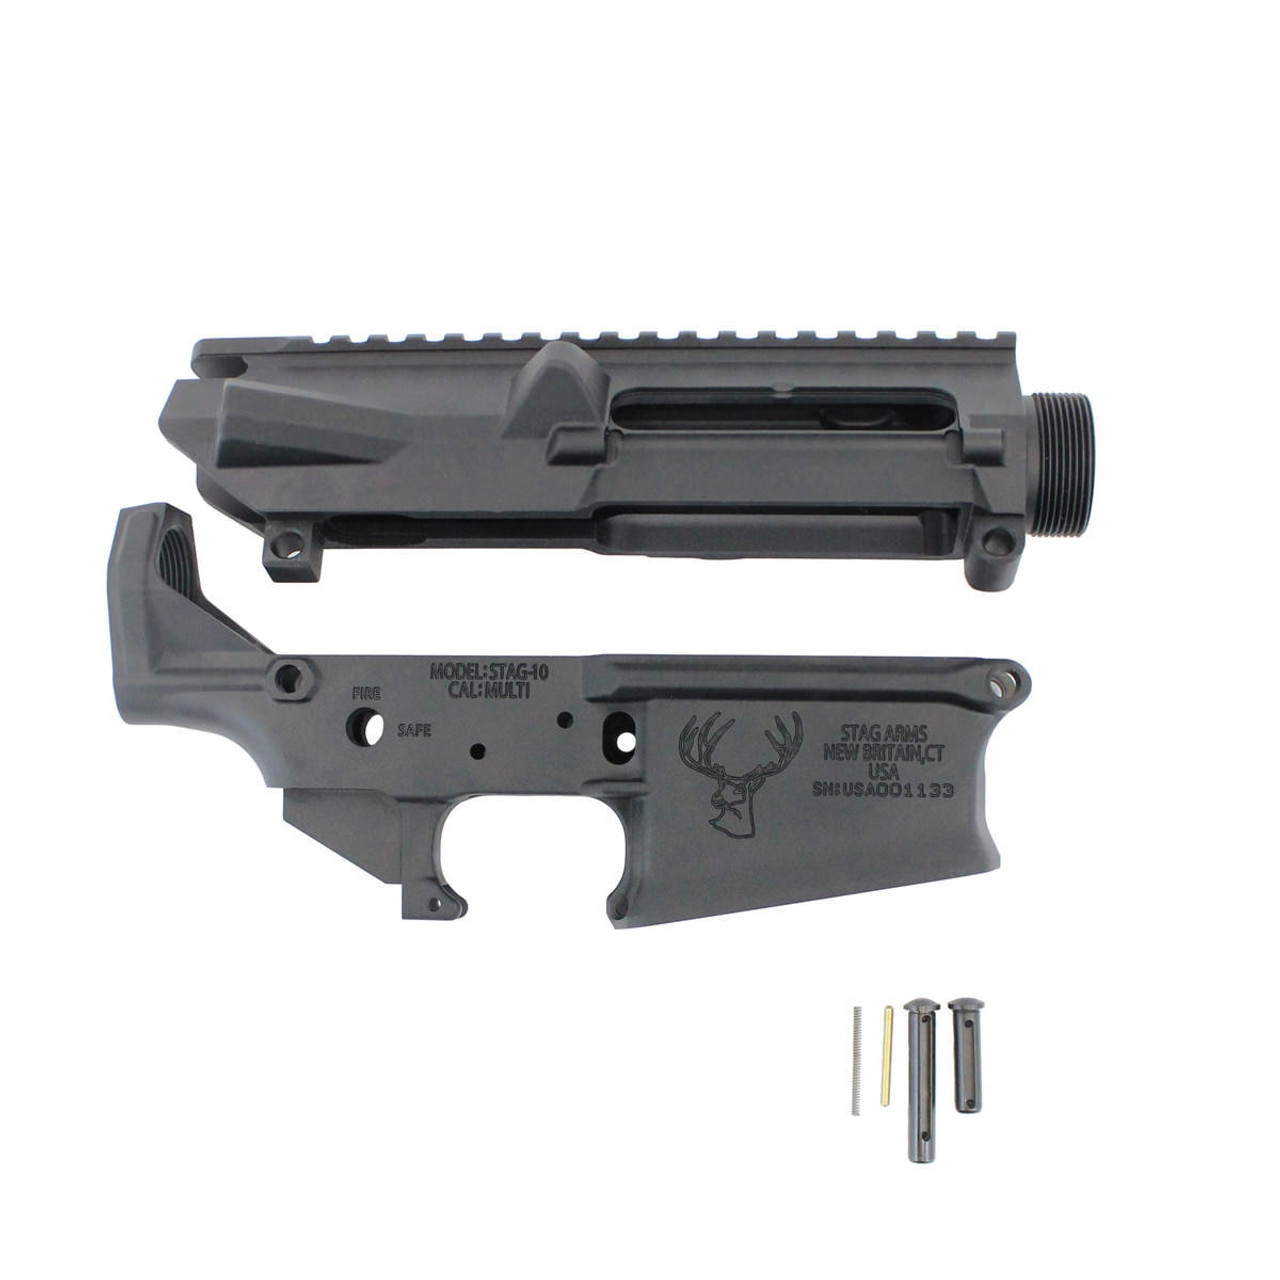 "Stag 10 Stripped Upper / Lower (NR) w/ Diamondhead 13.5"" Blemished Handguard"